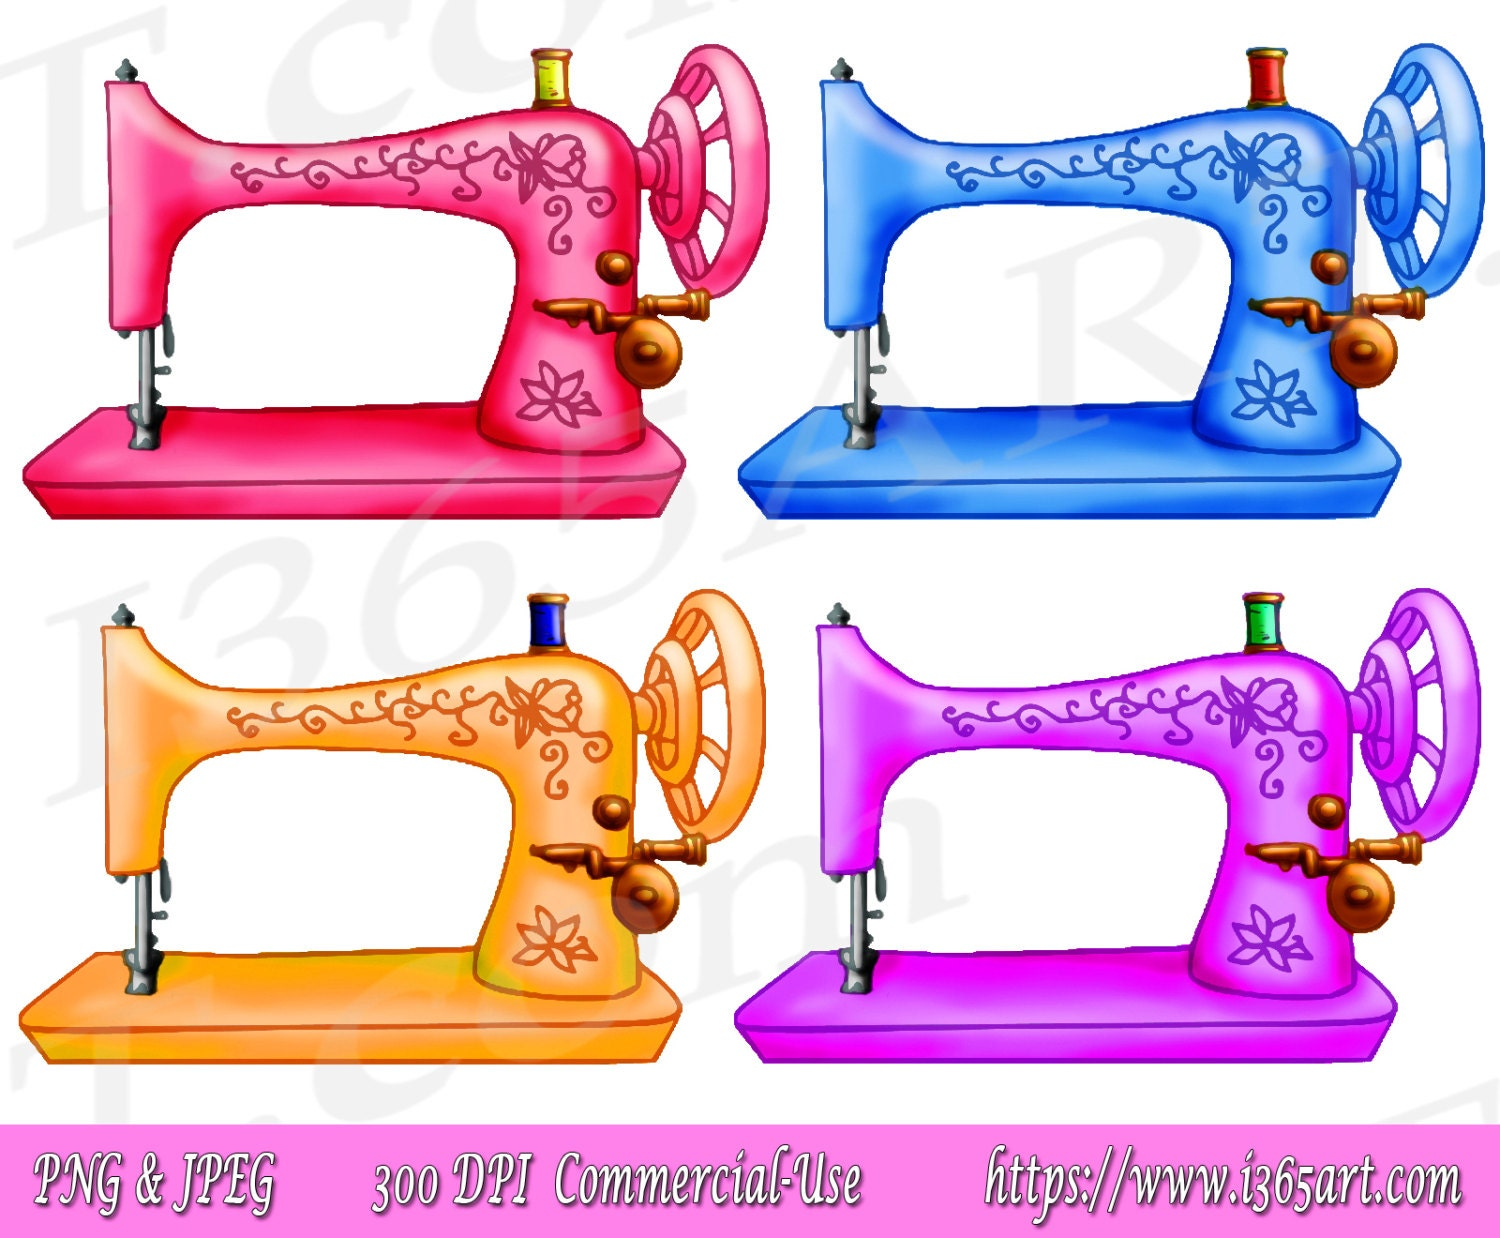 50% OFF Sewing Machine Clipart Sewing Machine Clip art | Etsy